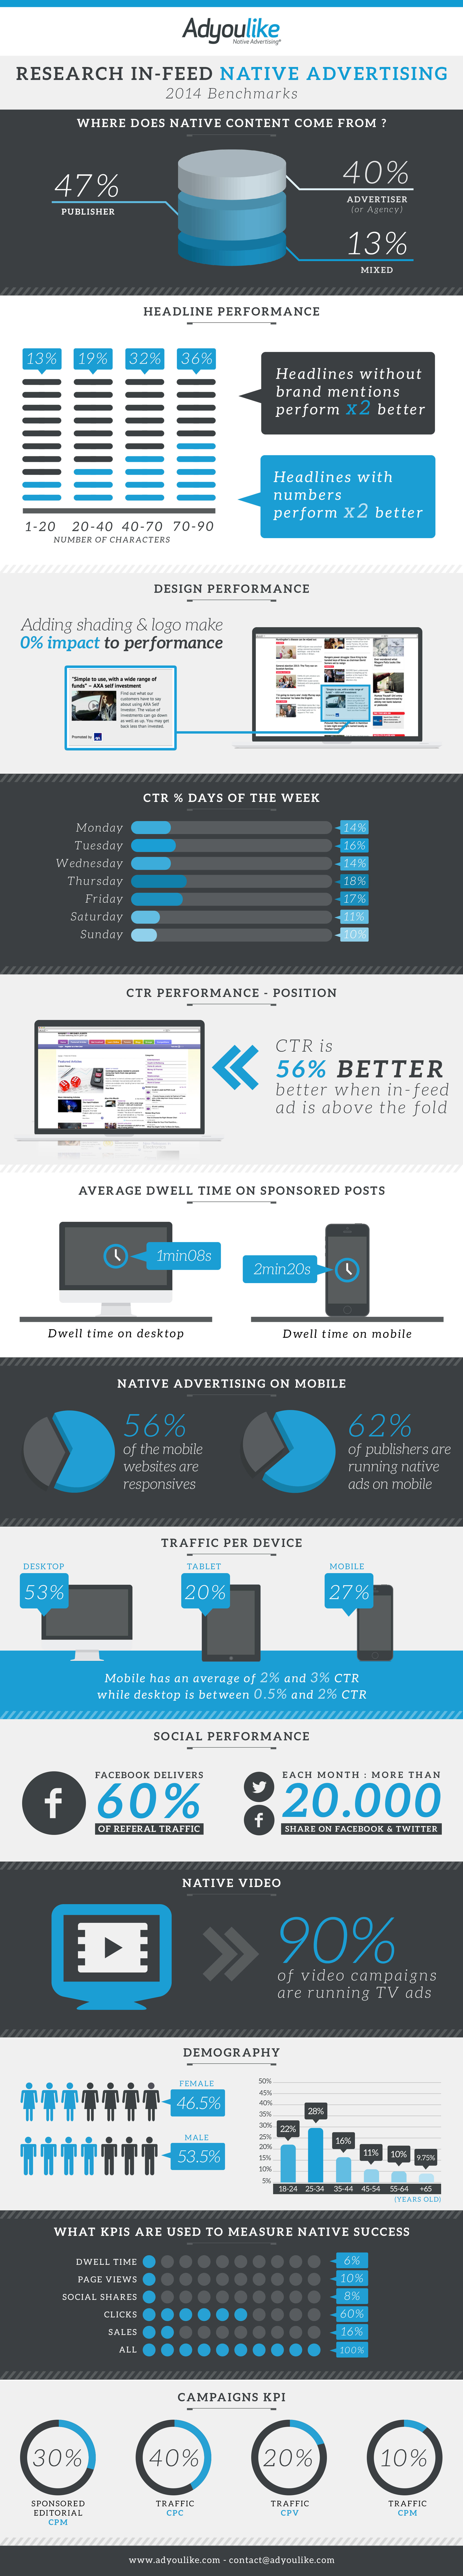 Infographic: What Makes A Successful Native Ad?